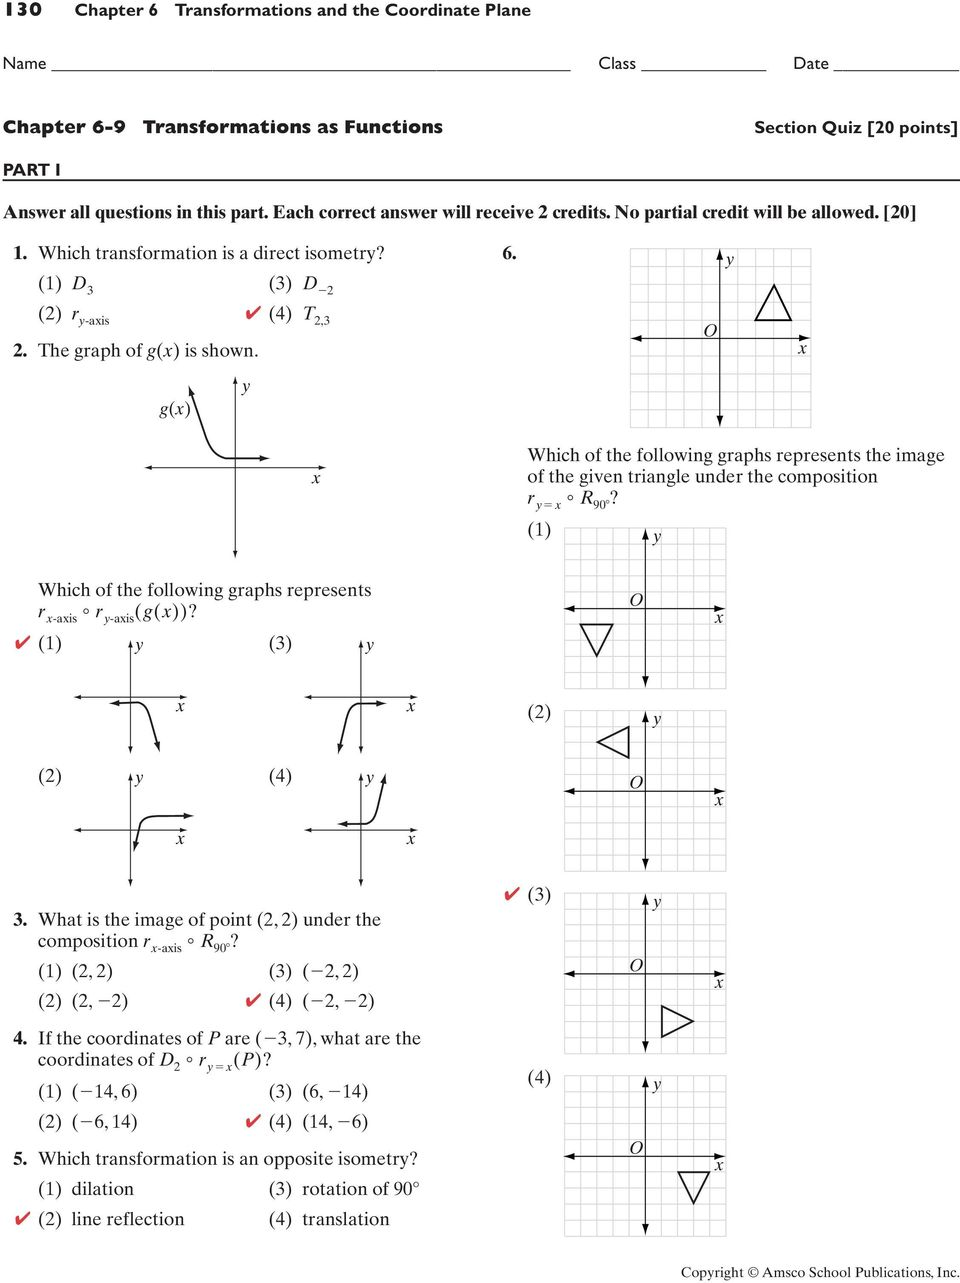 116 Chapter 6 Transformations and the Coordinate Plane - PDF